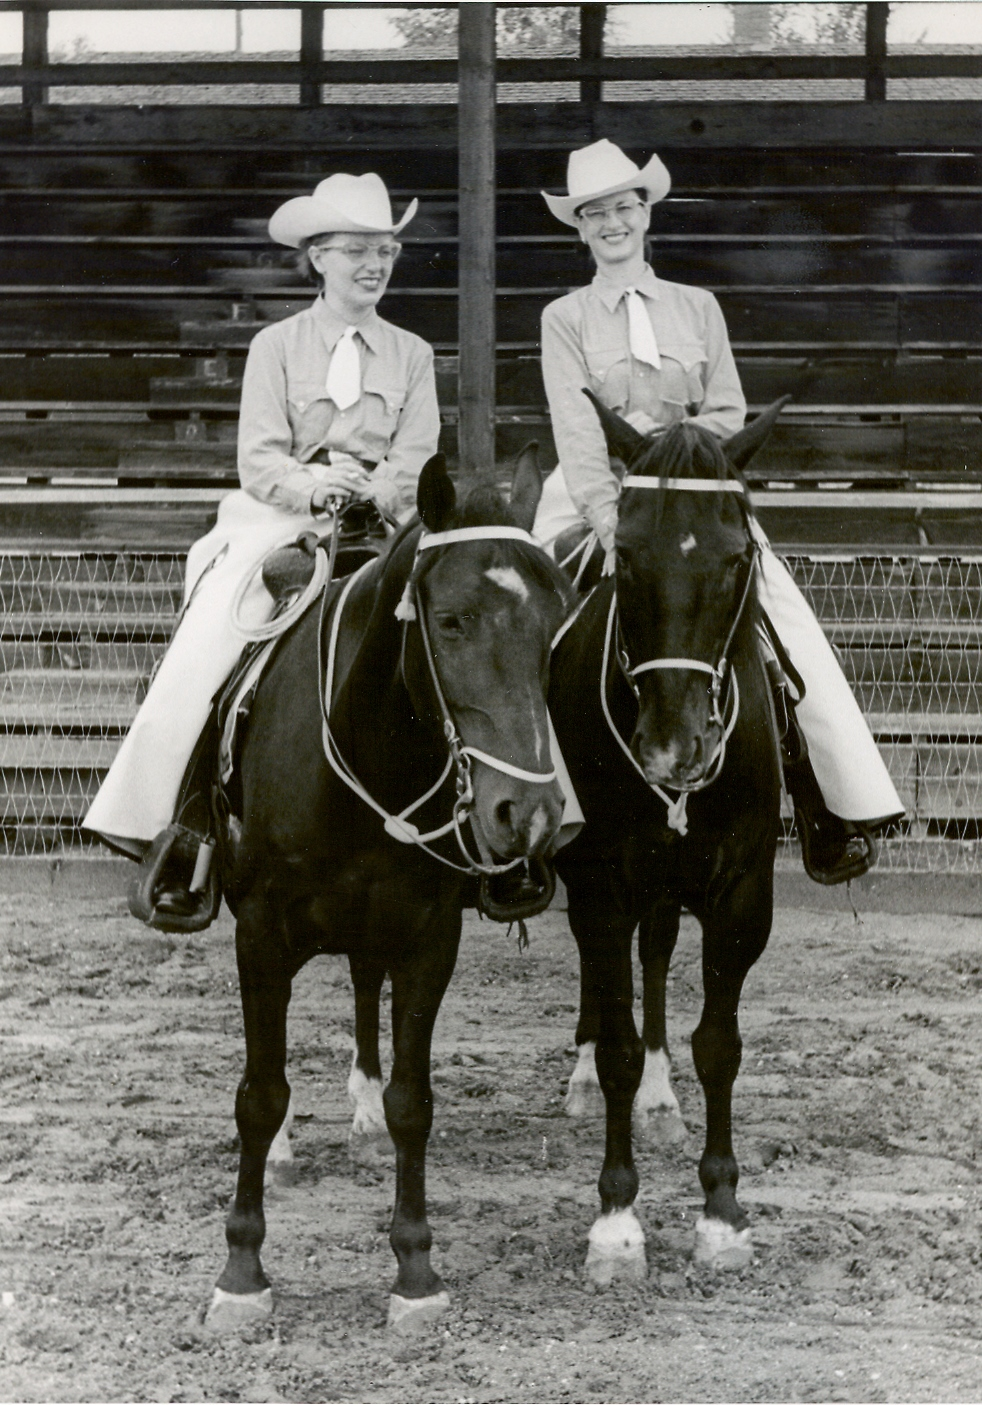 Westernaires warming up before their performance at the Adams County Horse Show in August of 1953